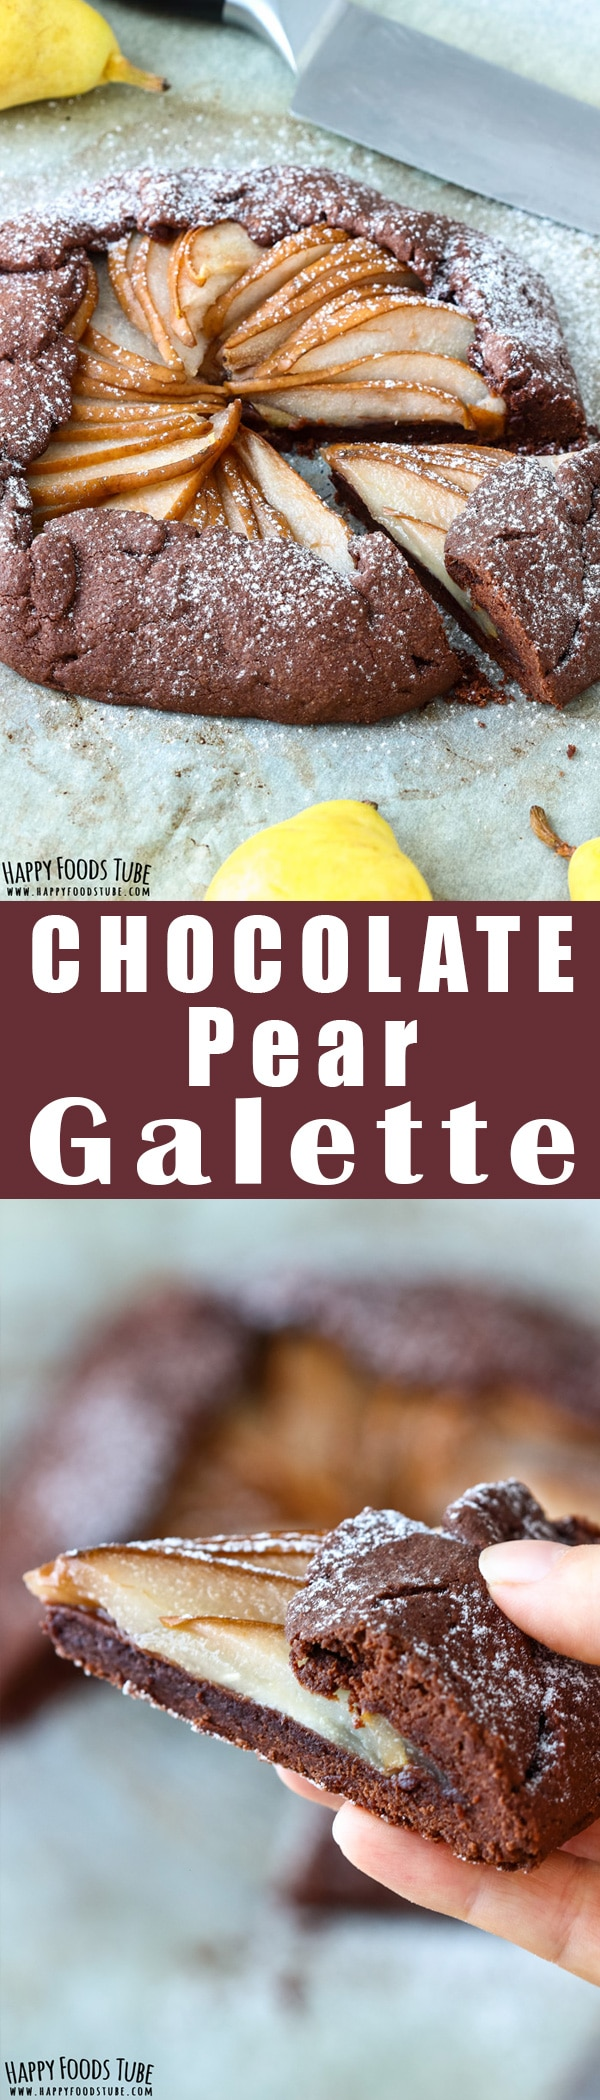 Chocolate Pear galette is the perfect fall dessert. Rich chocolate crust and sweet pear filling are hard to resist. Make the pastry ahead and finish off the next day. Easy homemade dessert recipe. Only 6-ingredients and ready in 40-minutes. #galette